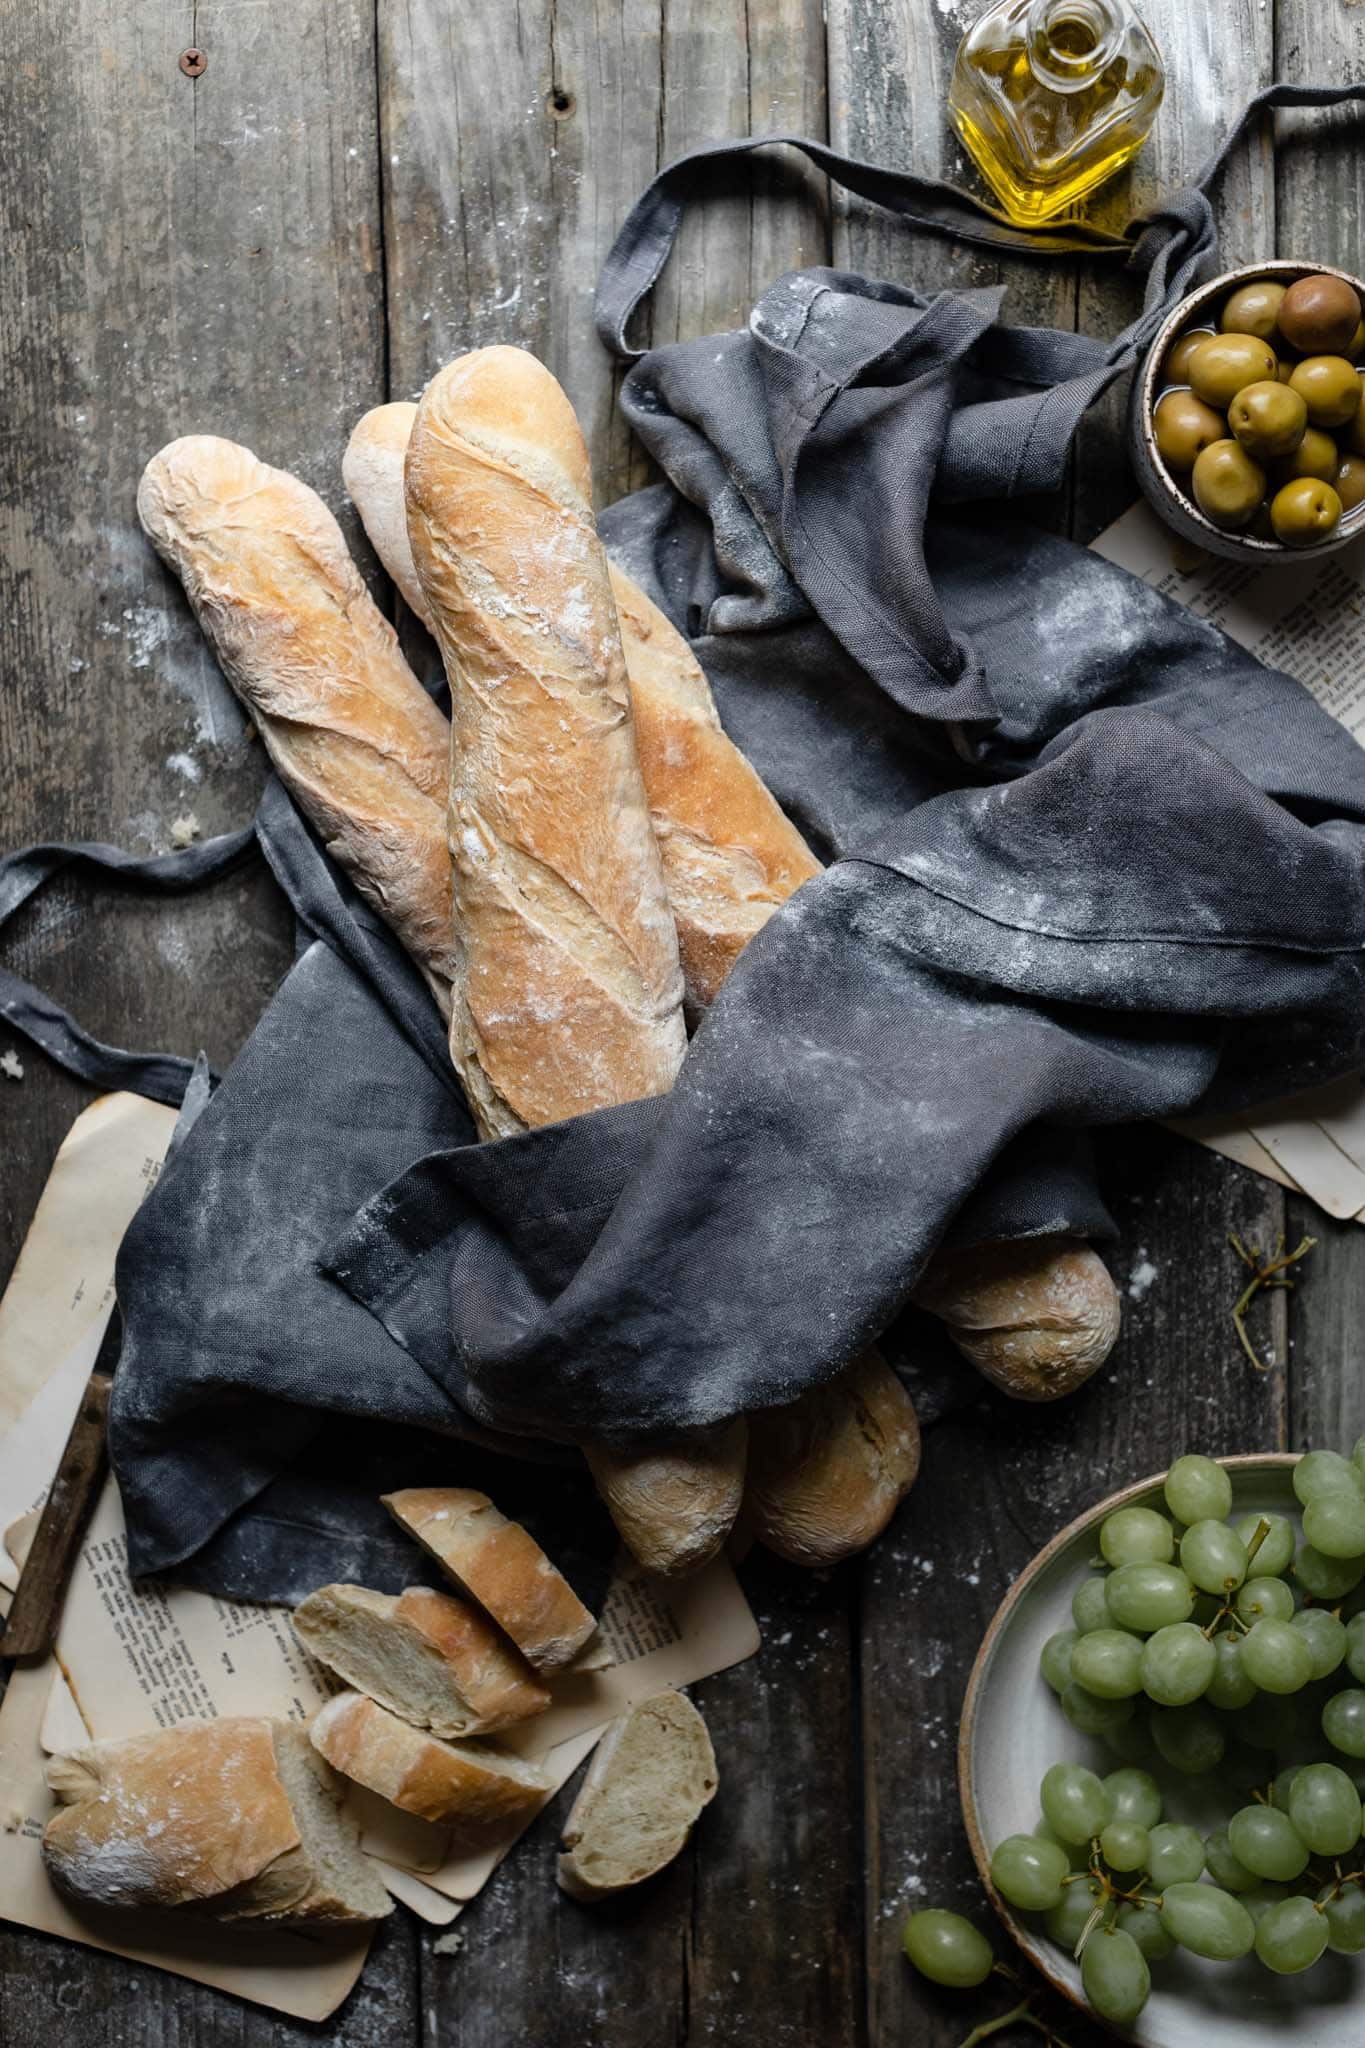 Recipe for french baguettes served with olives.